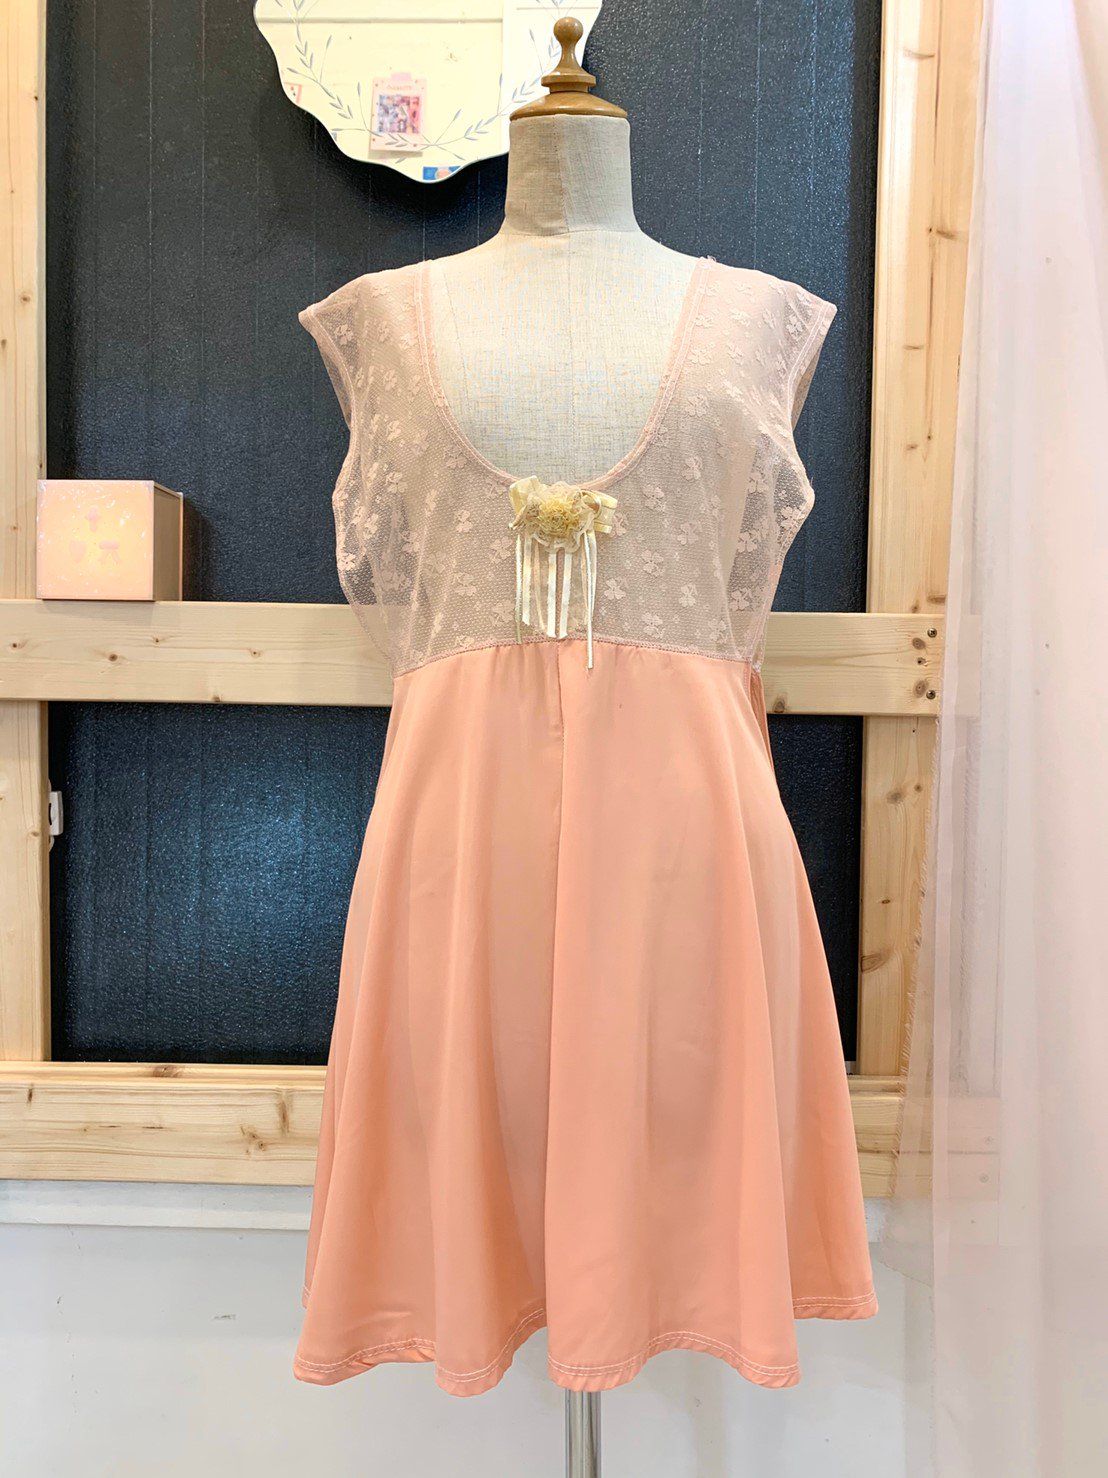 26.salmon pink lace onepiece